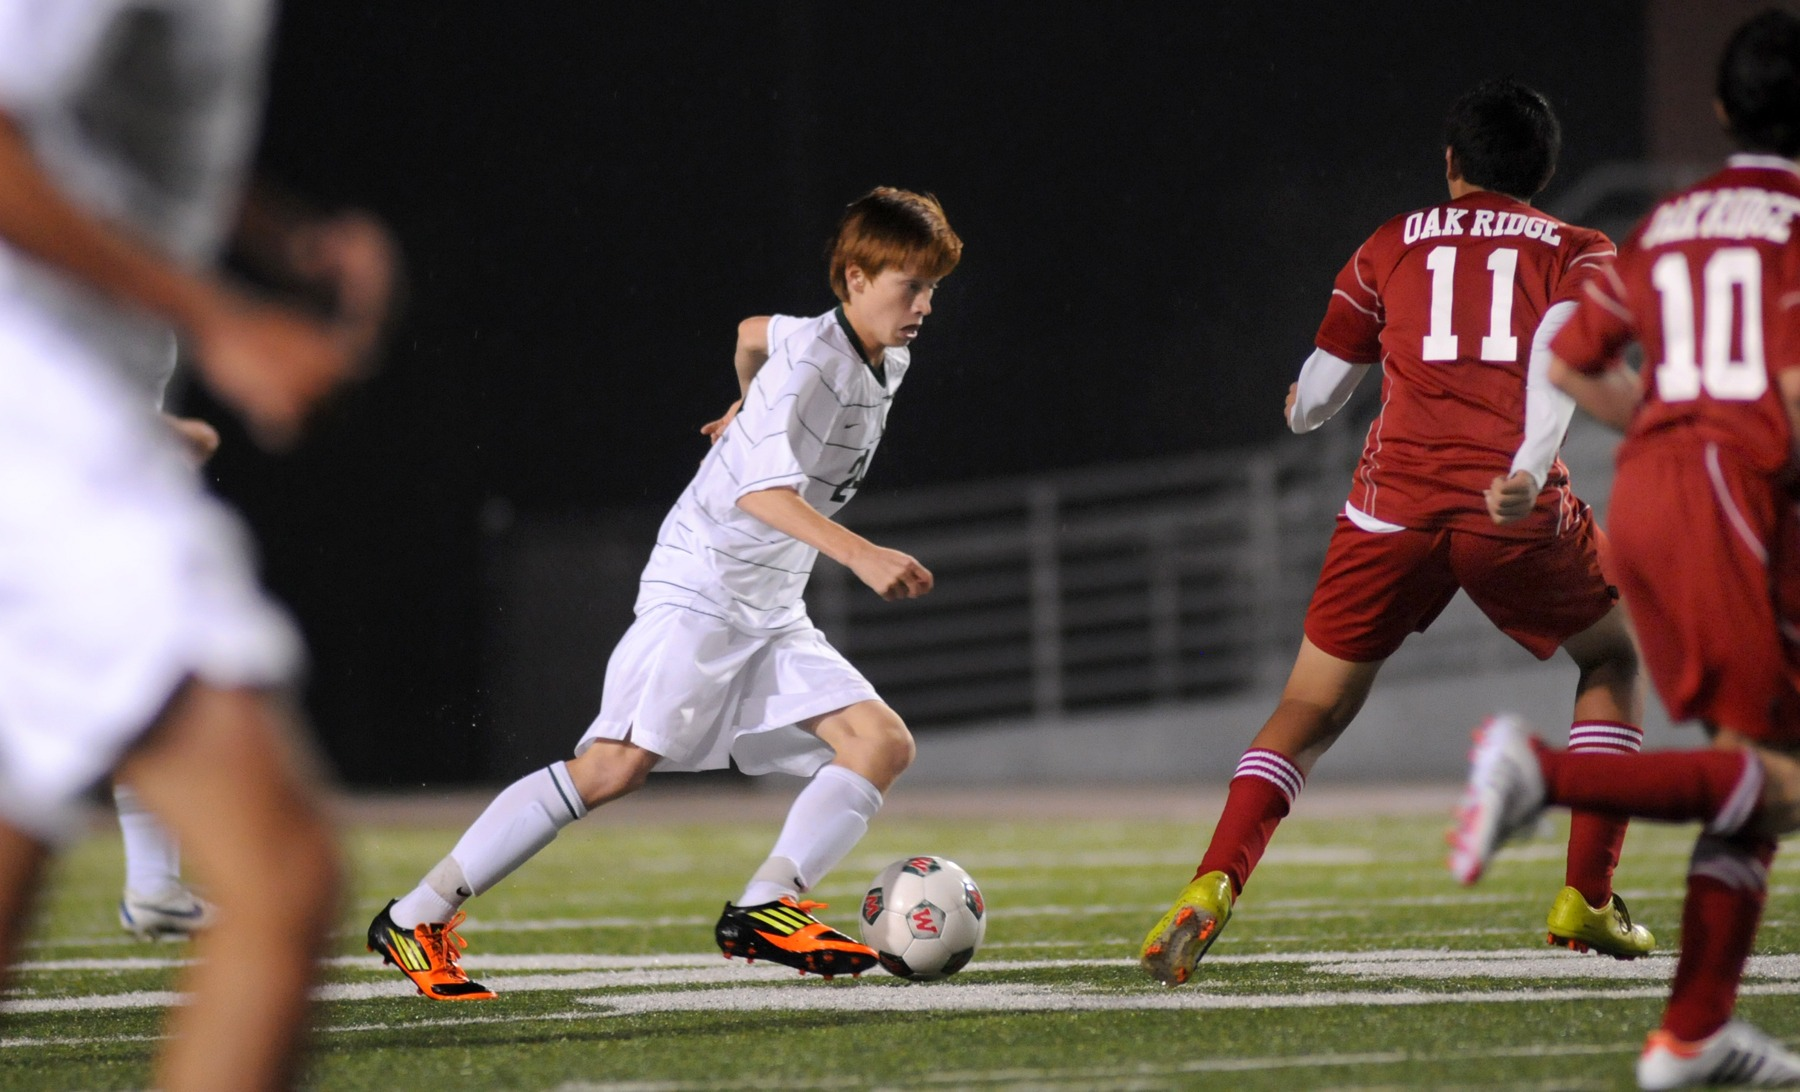 Soccer: Highlanders look for big year - Houston Chronicle